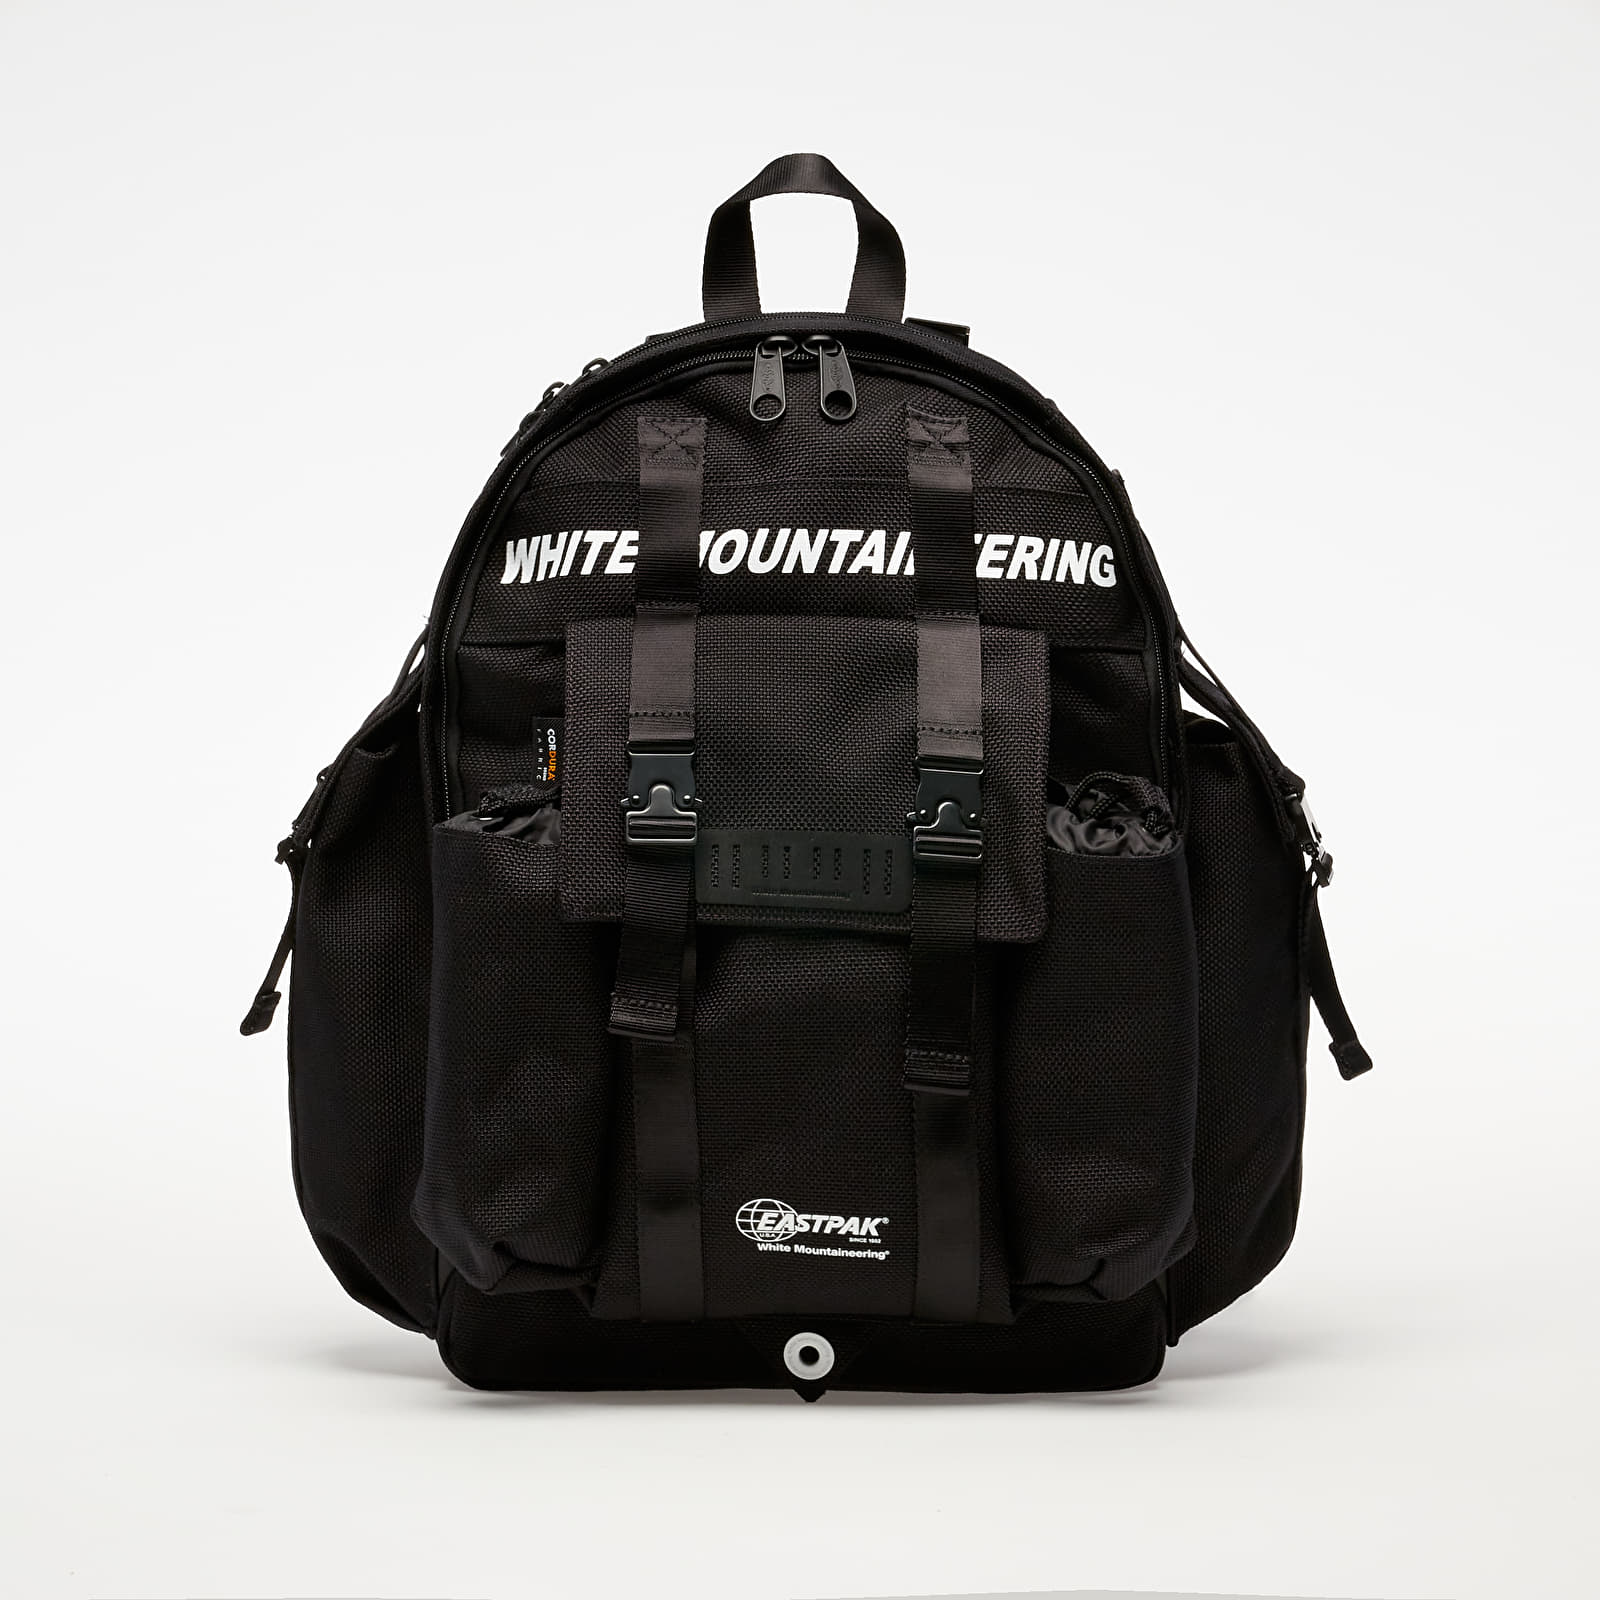 Bags and backpacks Eastpak x White Mountaineering Pak'r Backpack -